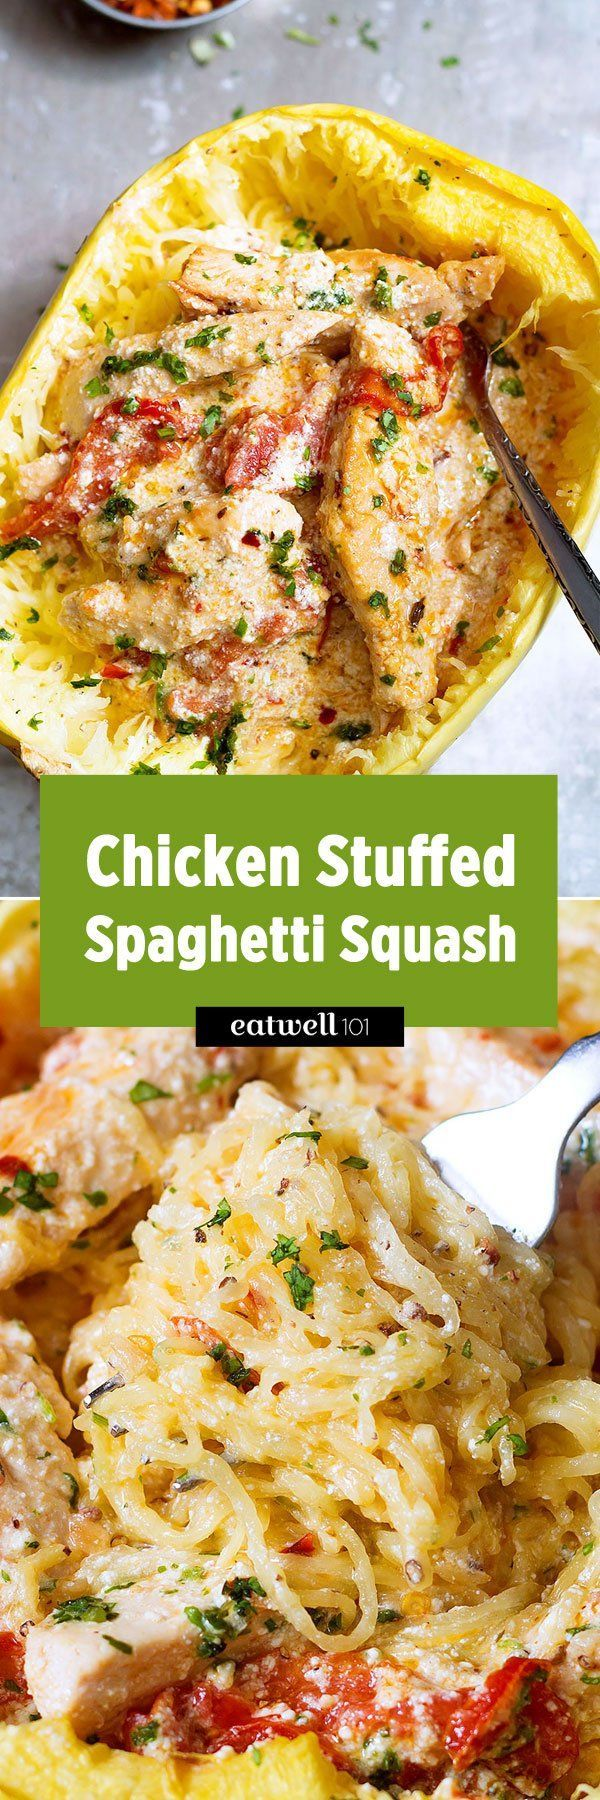 A great gluten free, low carb comfort food dinner! Spaghetti squash is stuffed with a creamy, cheesy, chicken and dried tomato filling. It's next-level delicious and perfect if you don't like doing…